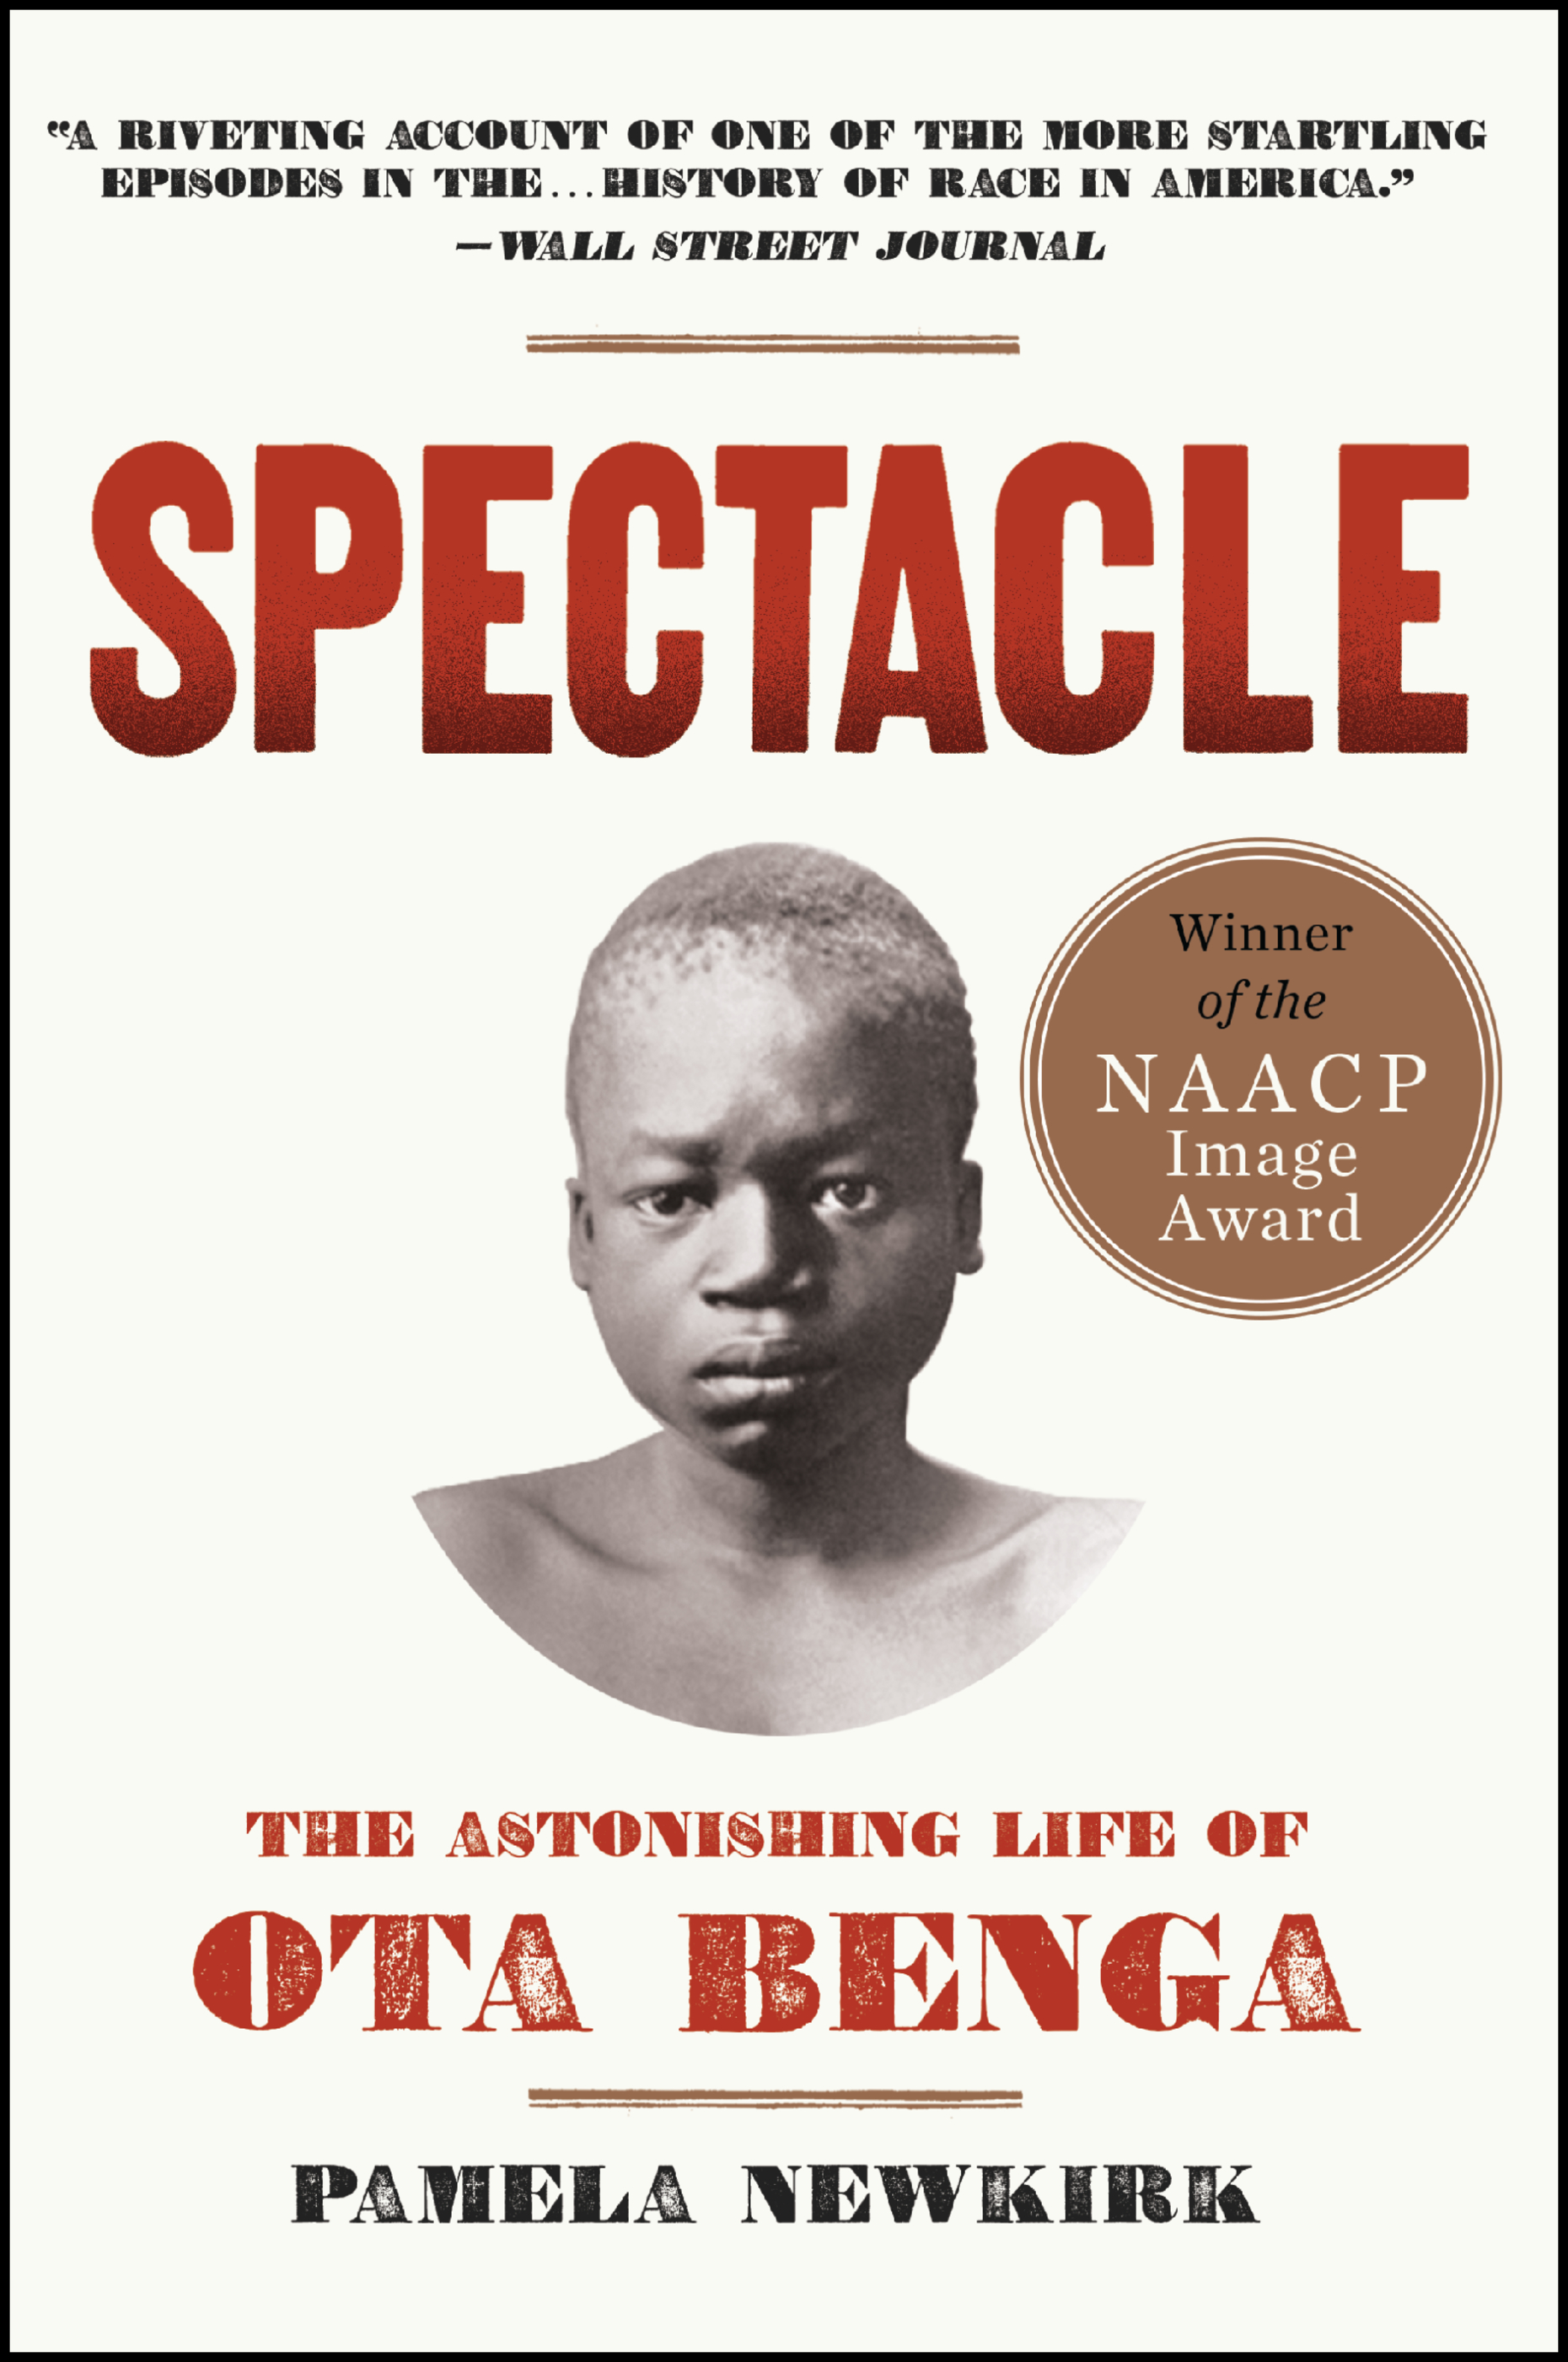 Spectacle  by Pamela Newkirk  Winner of the NAACP Image Award (2016) and the Hurston/Wright Legacy Award in Nonfiction (2016)